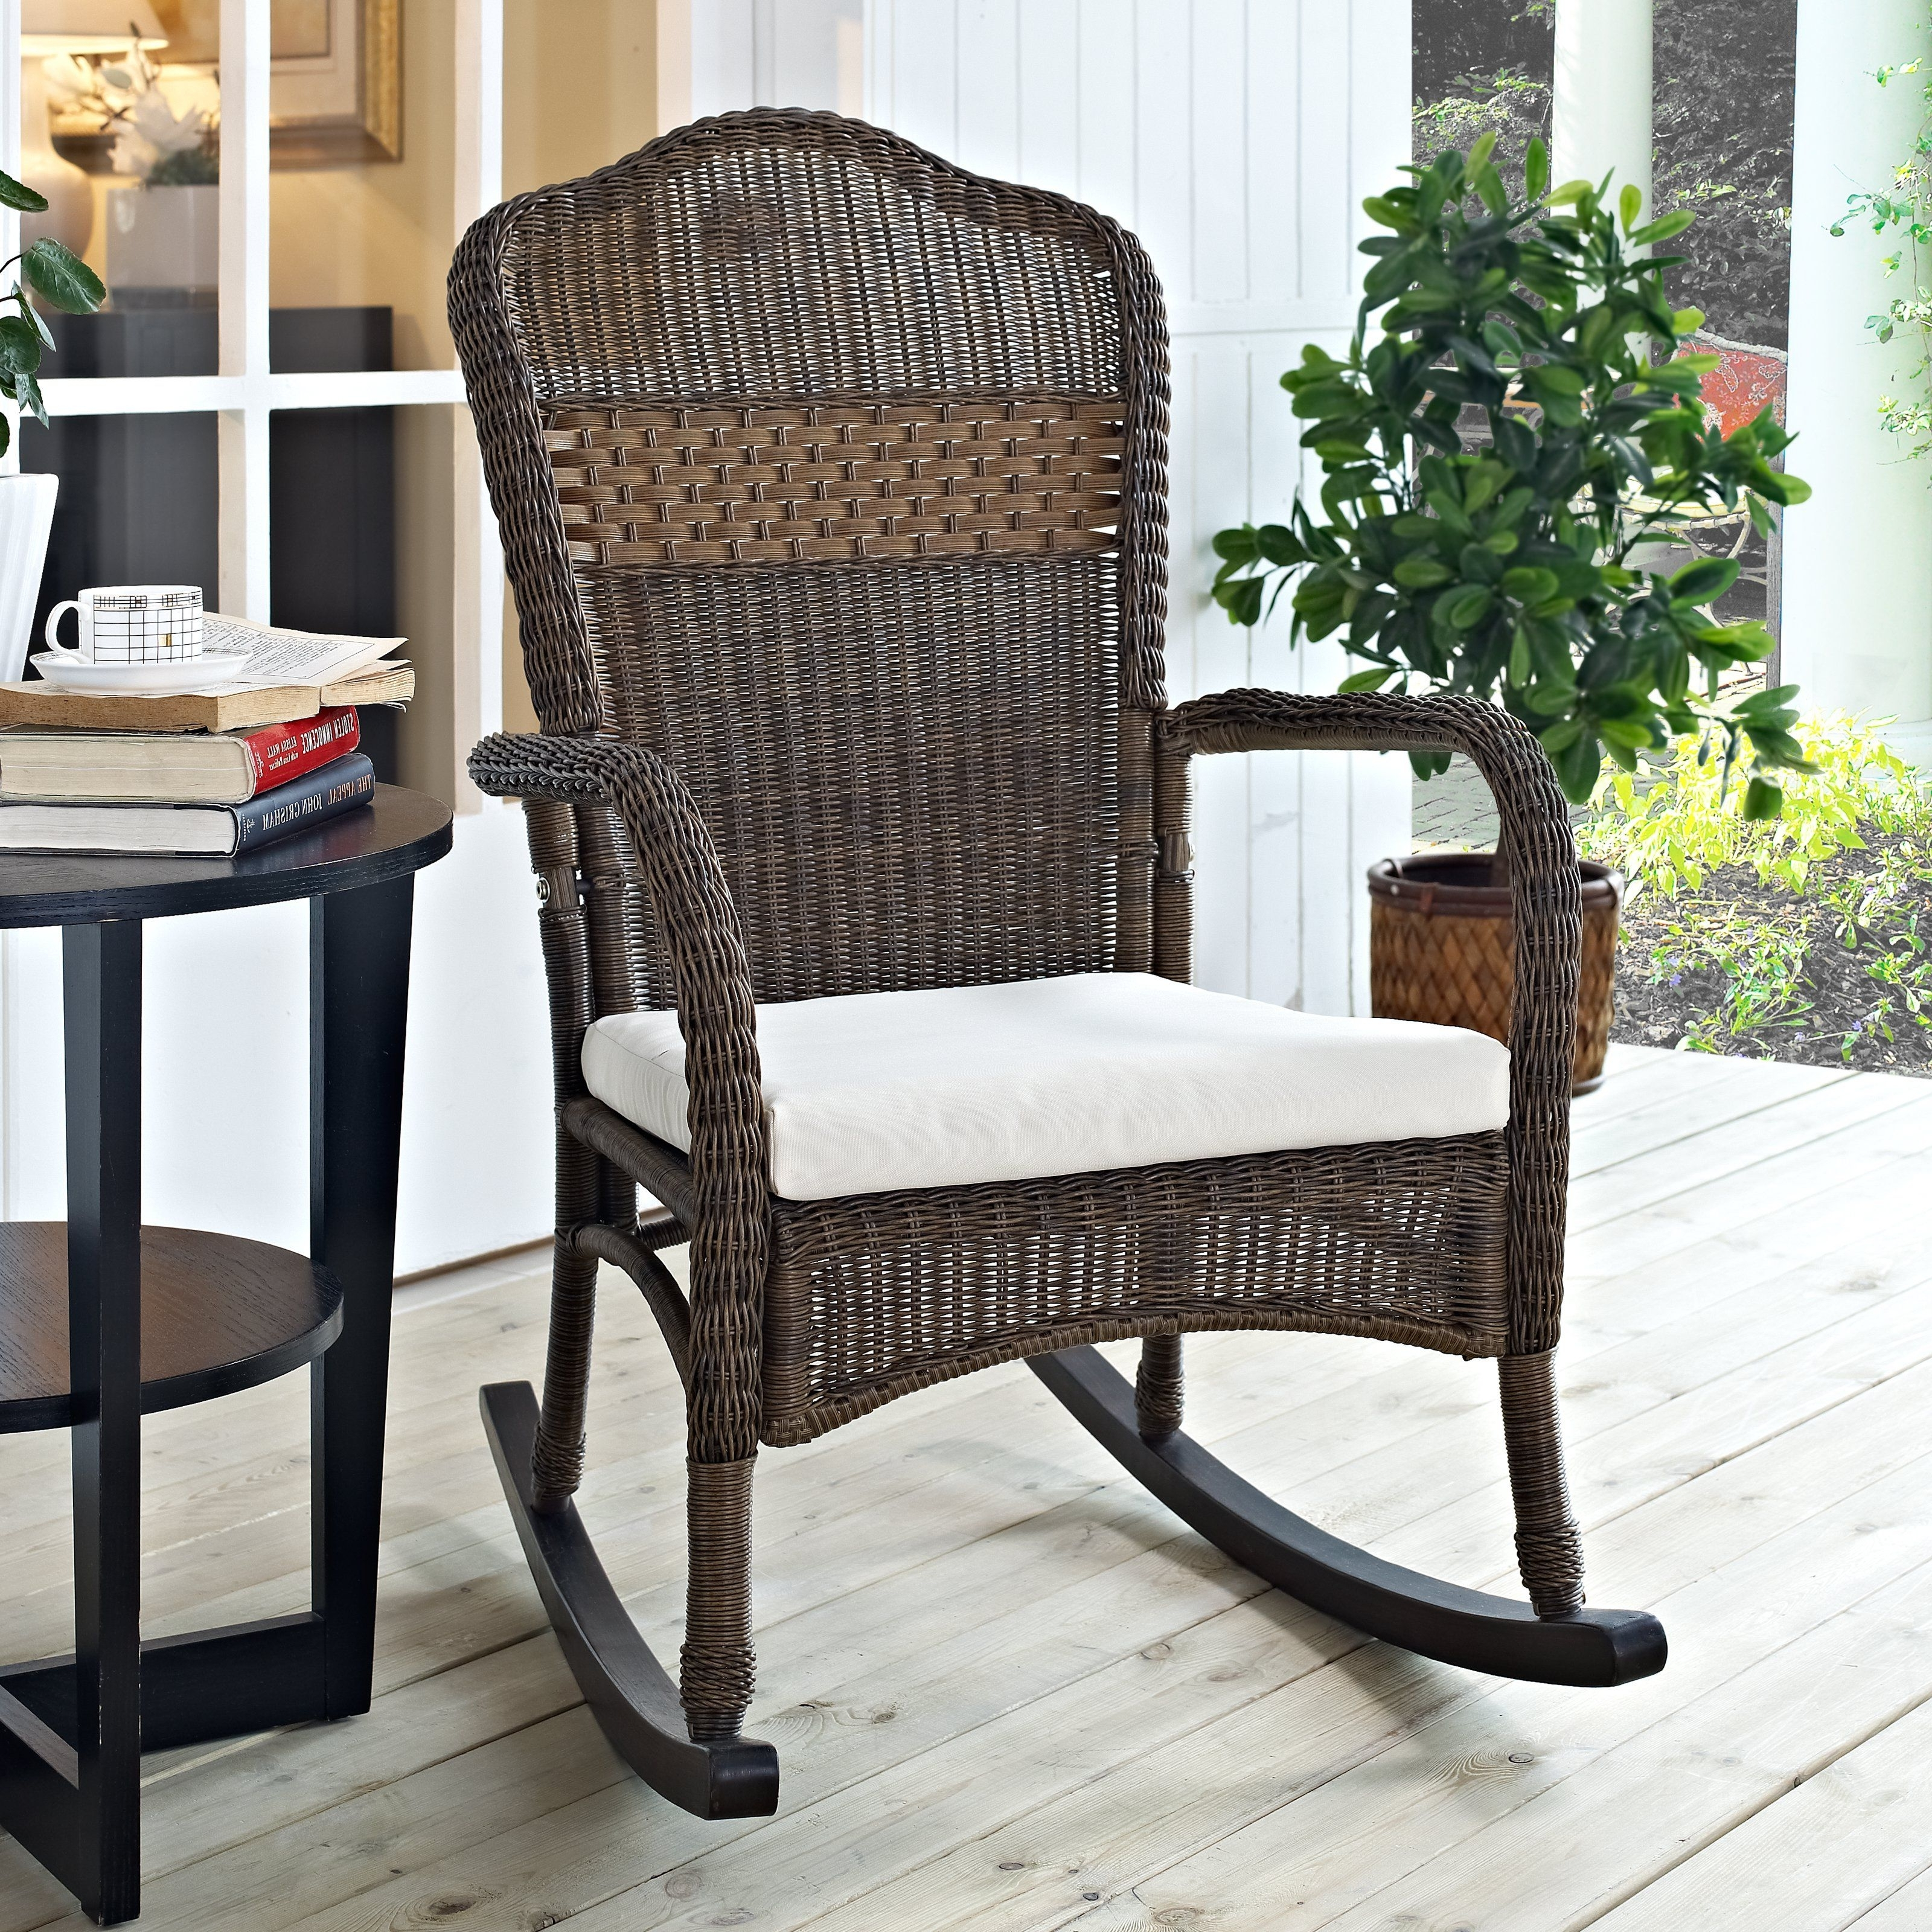 Outdoor Coral Coast Mocha Resin Wicker Rocking Chair With Beige Regarding Latest Wicker Rocking Chairs With Cushions (View 3 of 15)